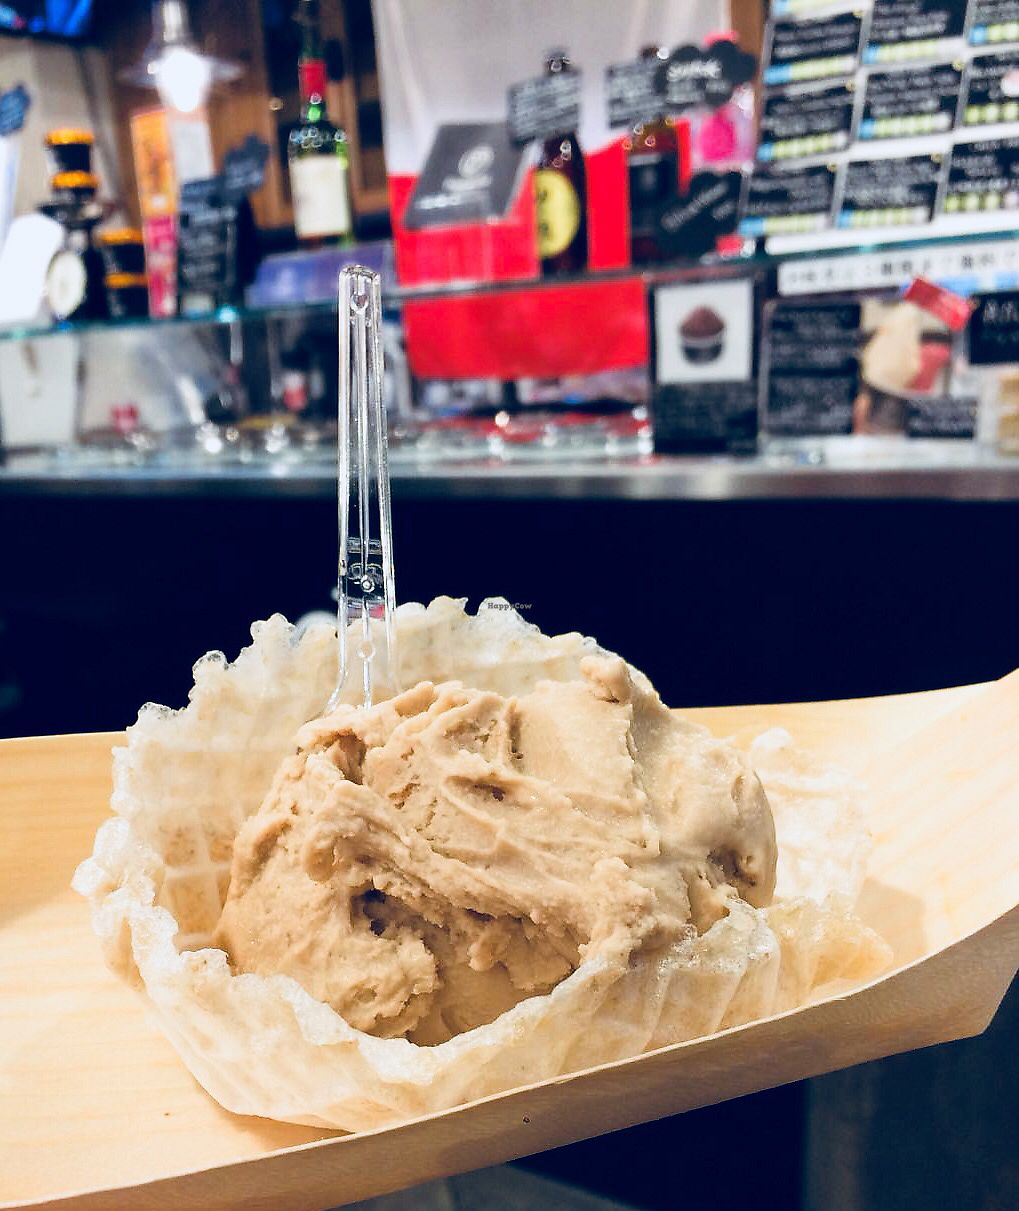 """Photo of Premarche Gelateria  by <a href=""""/members/profile/V87"""">V87</a> <br/>Delicious Brown Gelato in a Ricewaffle cone (gluten, dairy, soy free) ! <br/> April 12, 2018  - <a href='/contact/abuse/image/96348/384593'>Report</a>"""